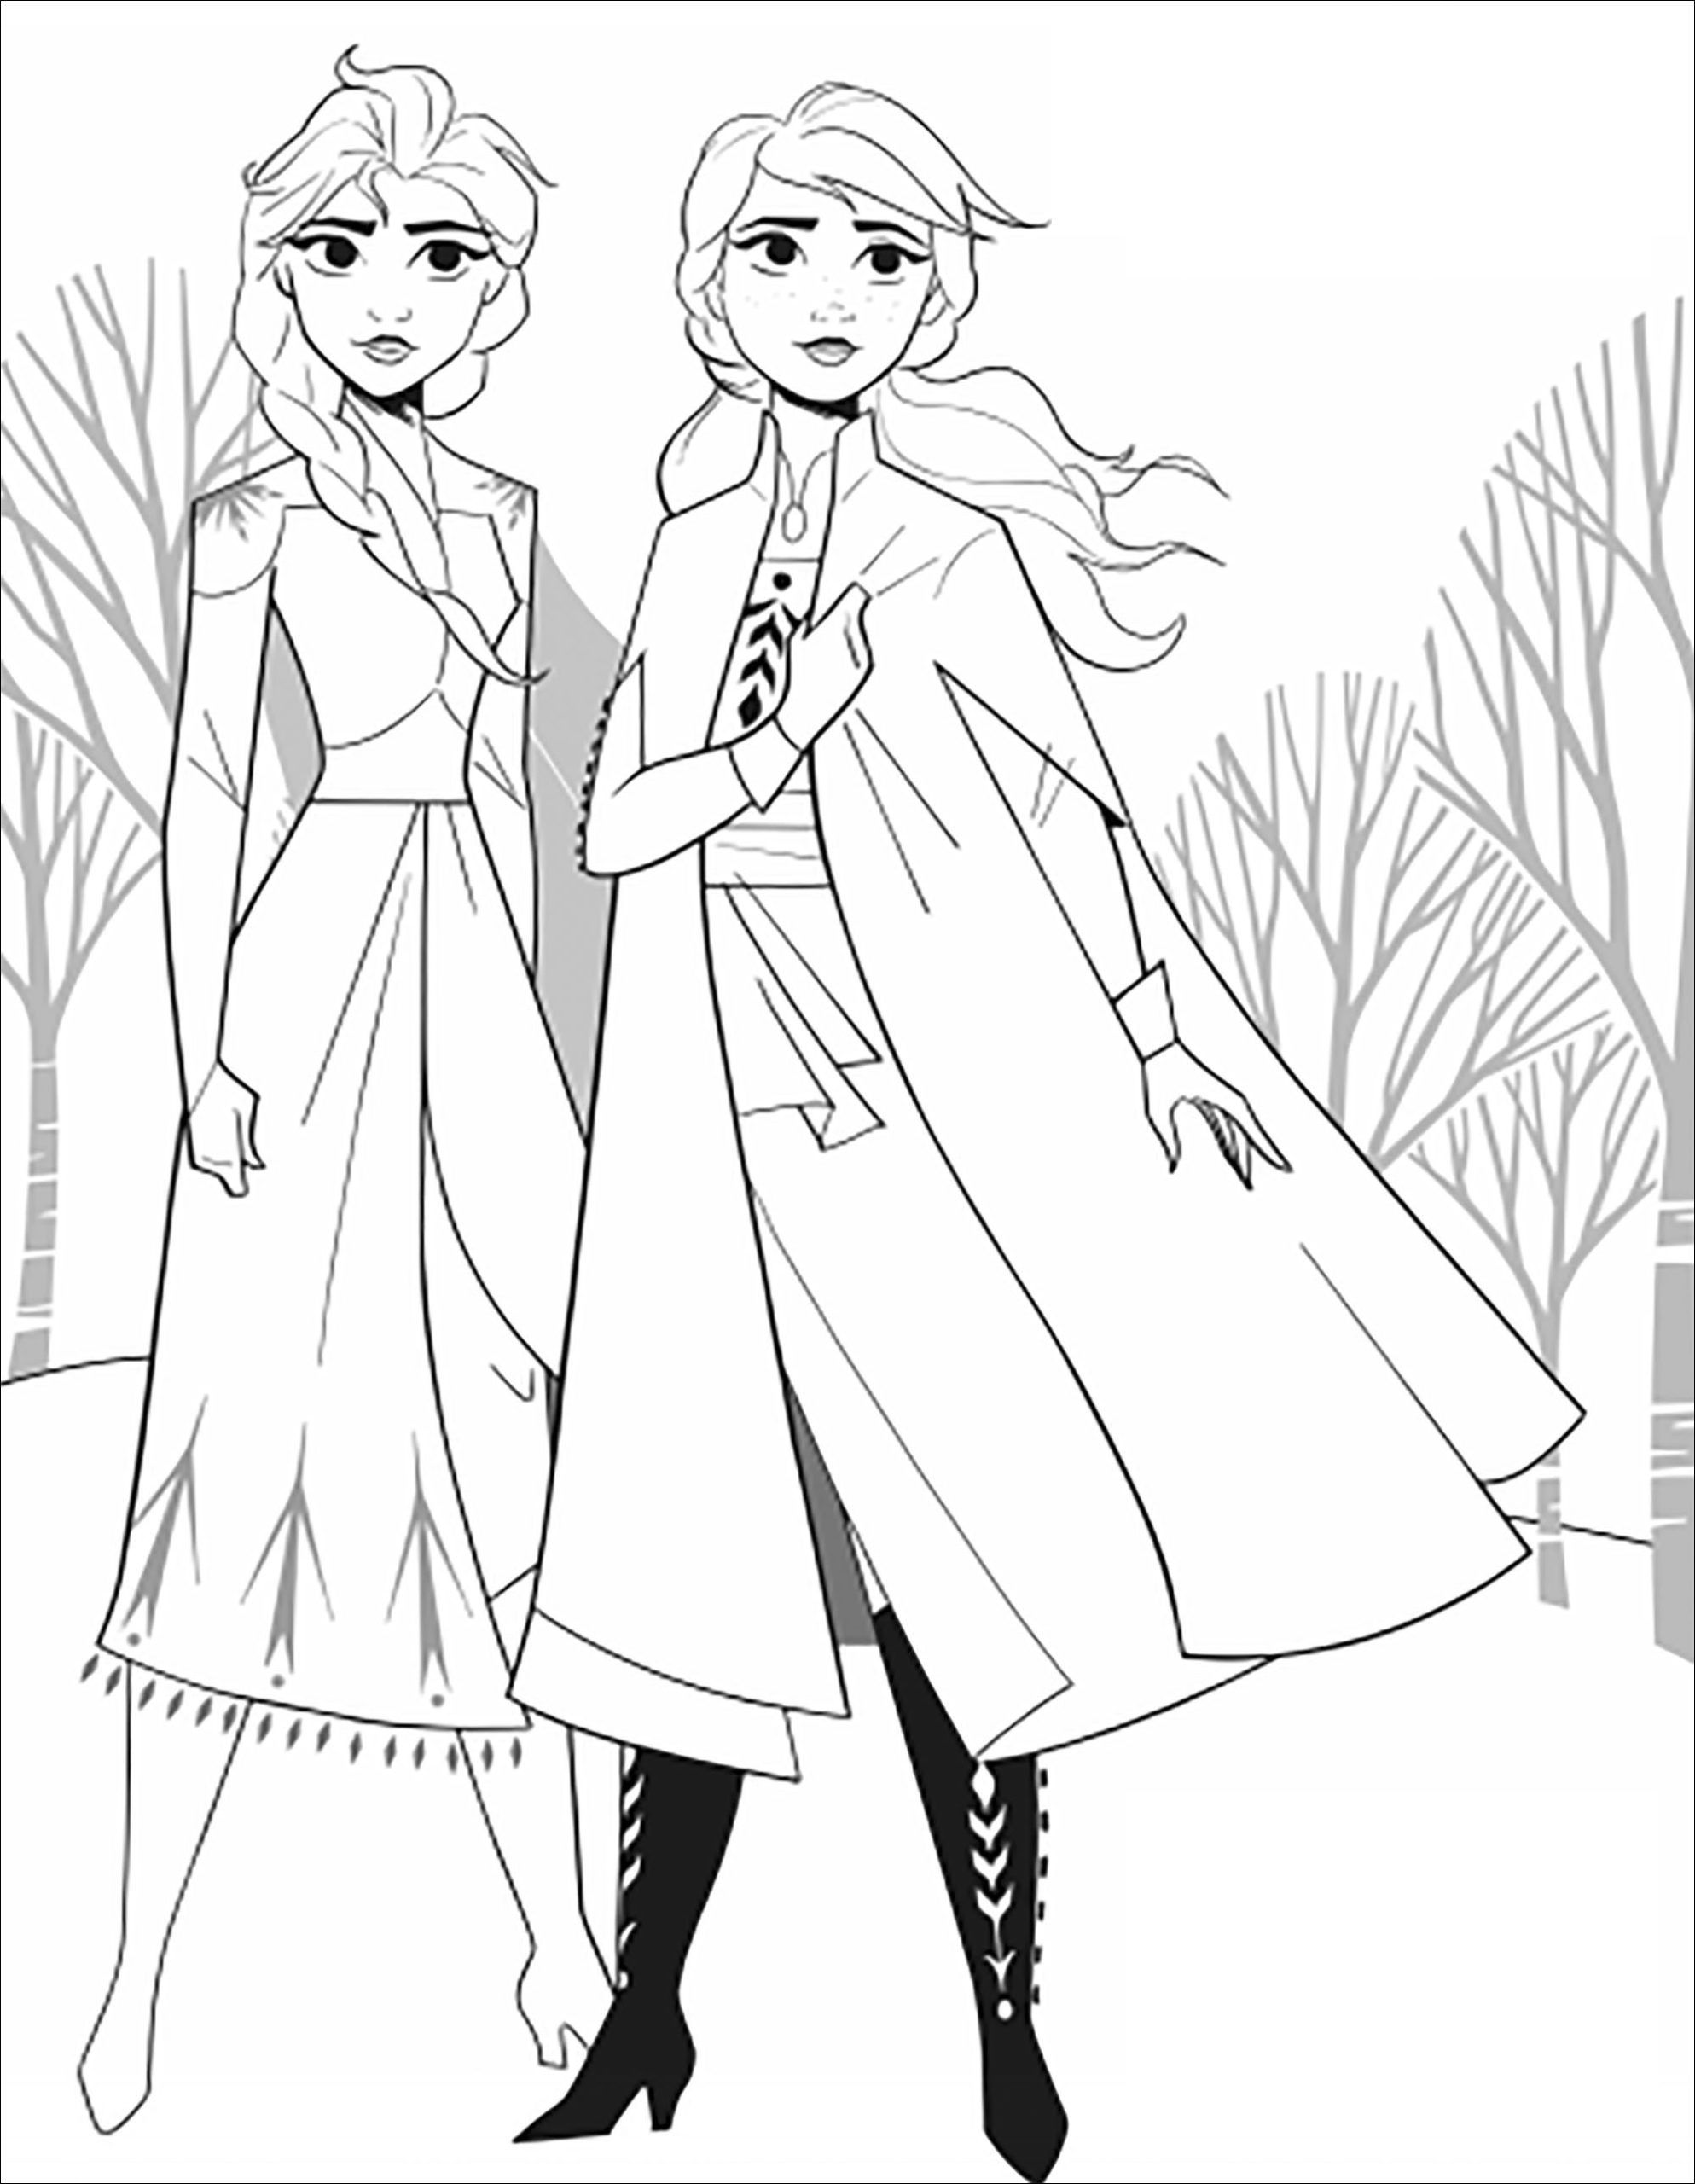 Free Printable Disney Coloring Pages And Games From 40 Disney Movies In 2021 Elsa Coloring Pages Frozen Coloring Pages Frozen Coloring